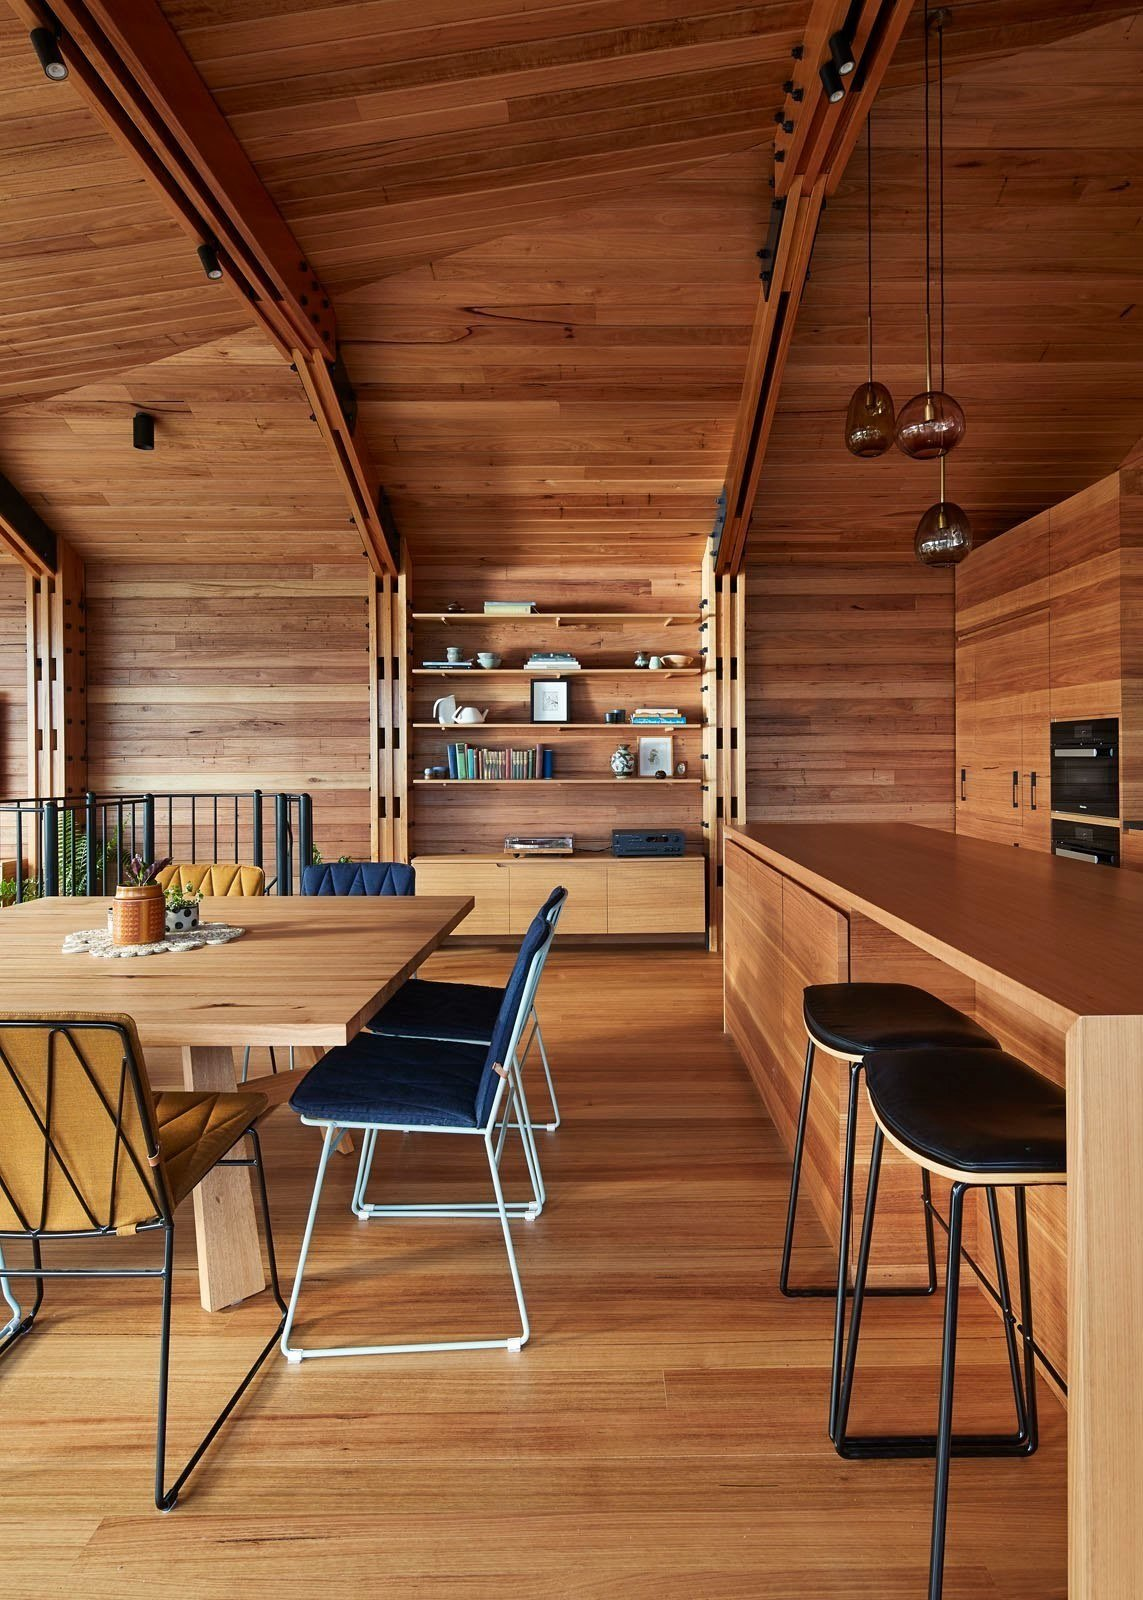 Dorman House by Dwell from A Great Ocean Road Shack With a View Gets a Sustainable Update